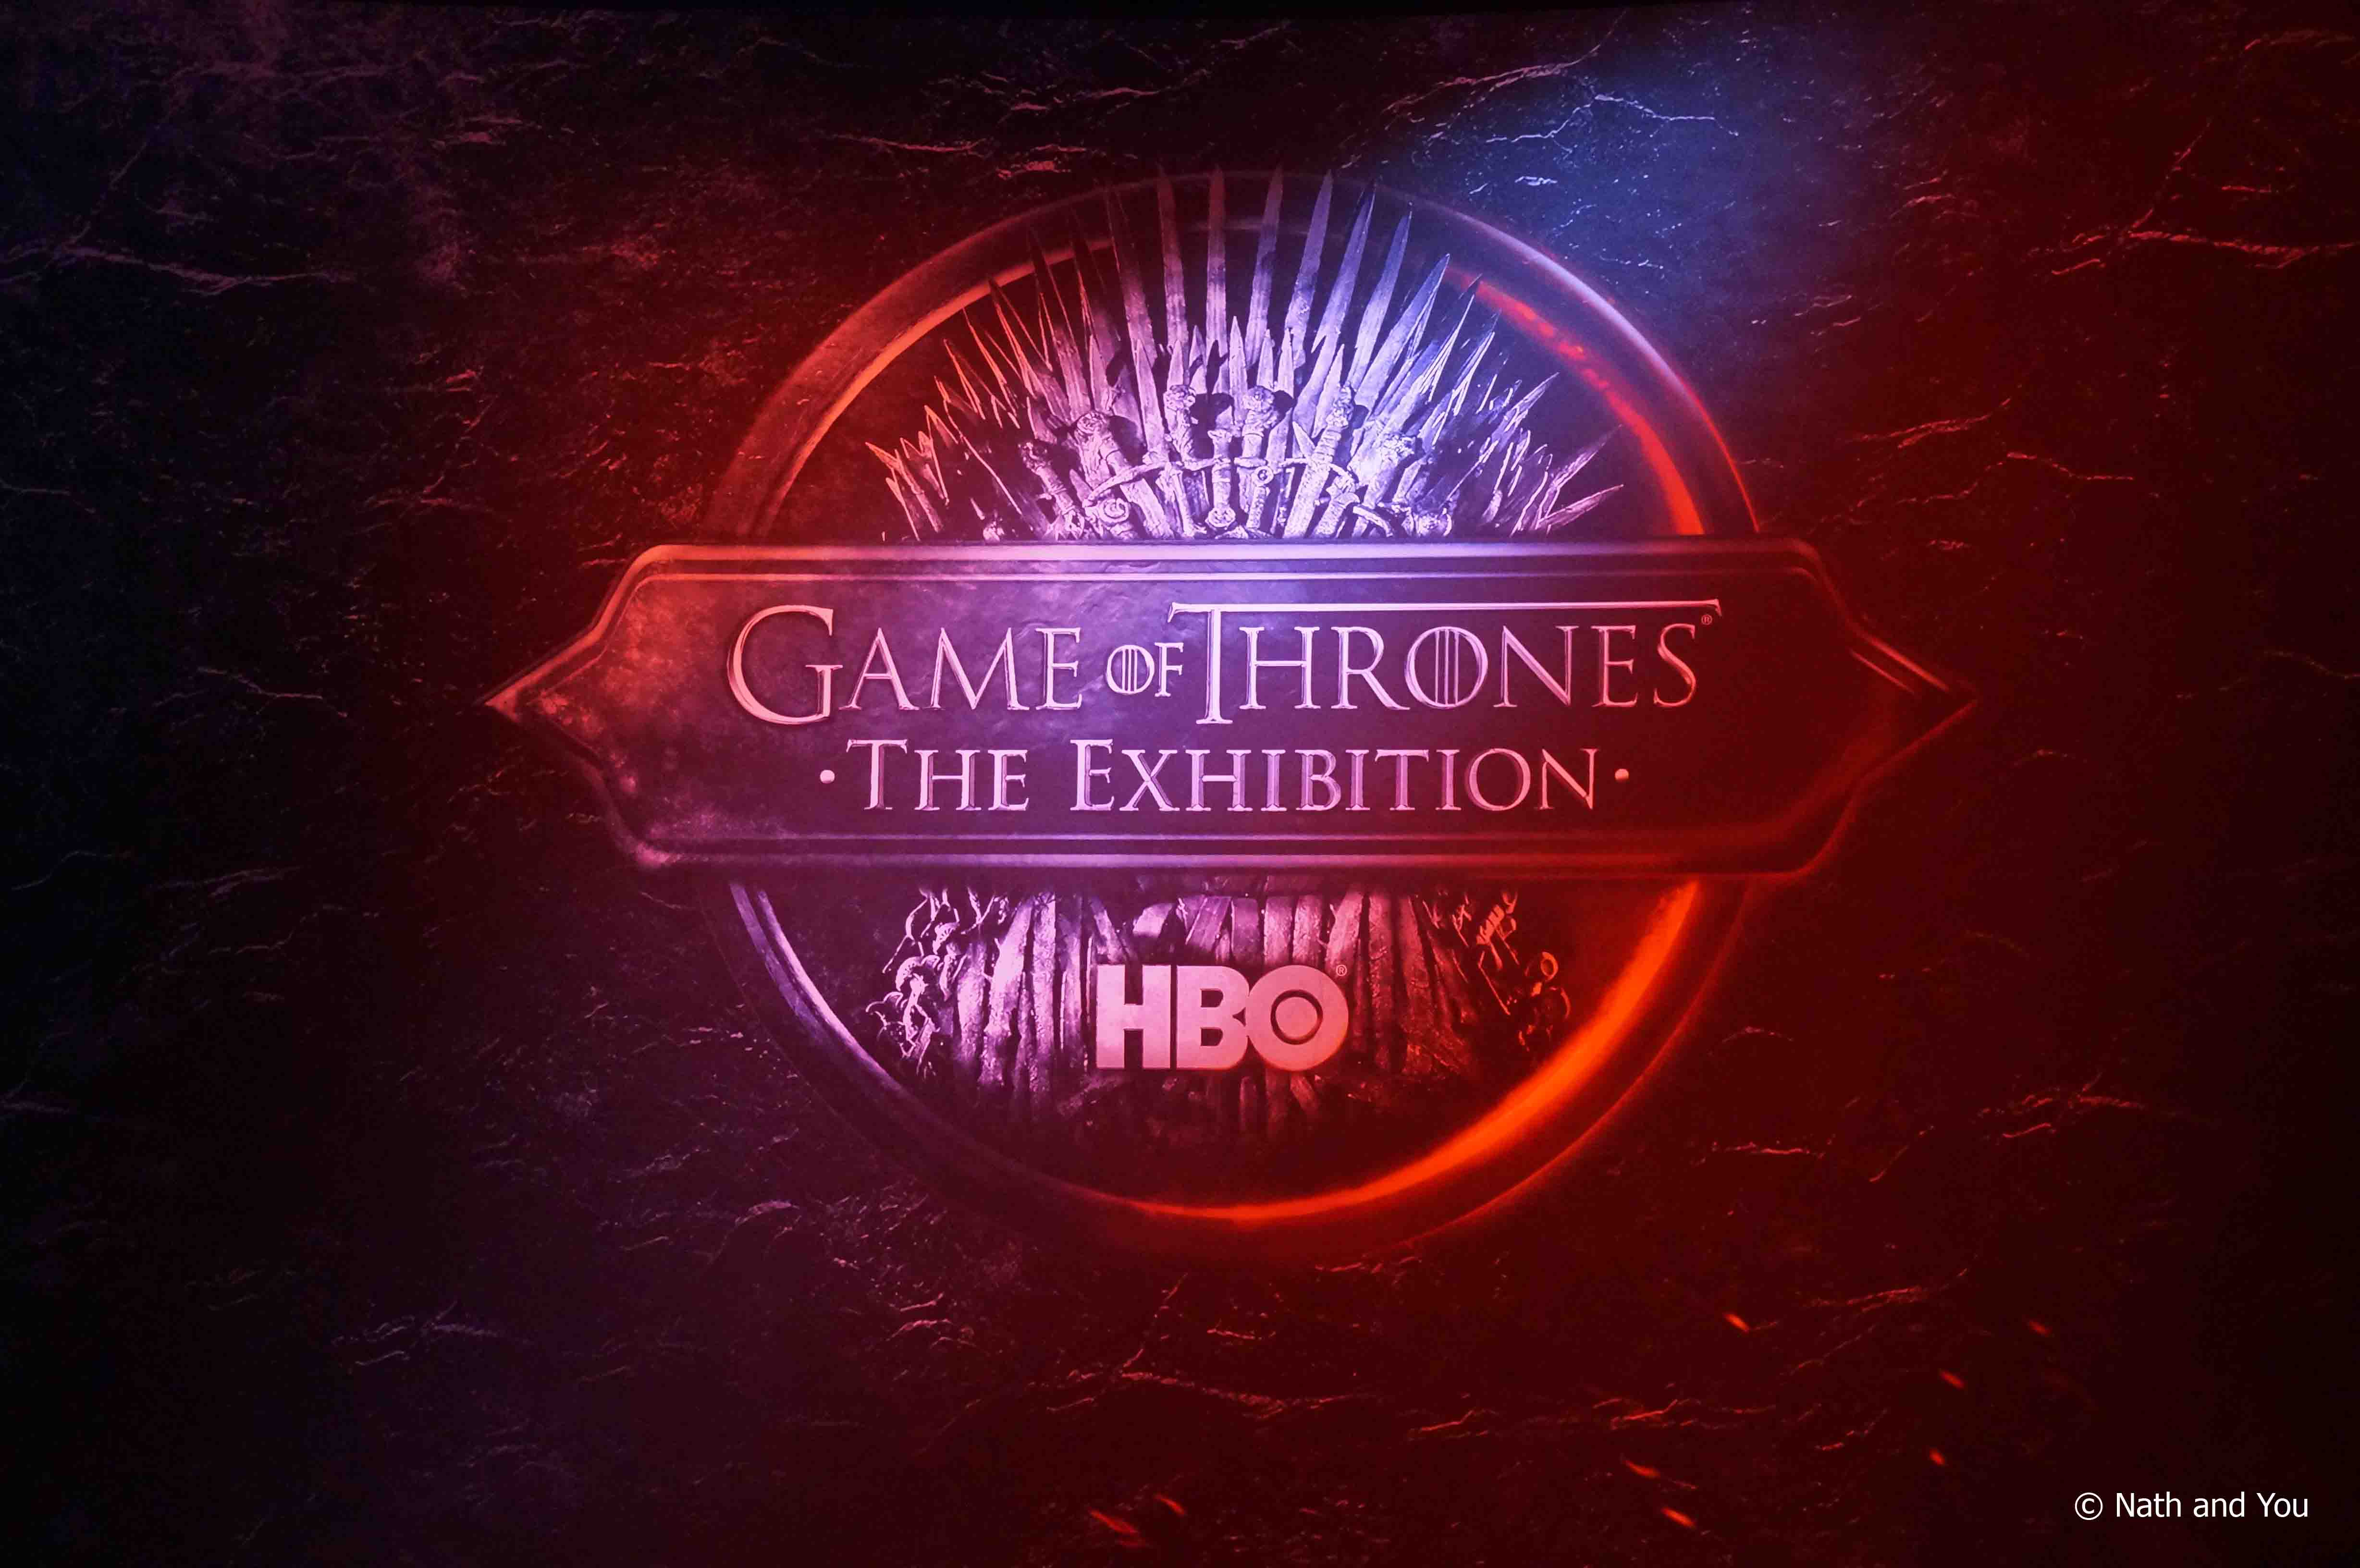 Exposition-Game-of-Thrones-Nath-and-you